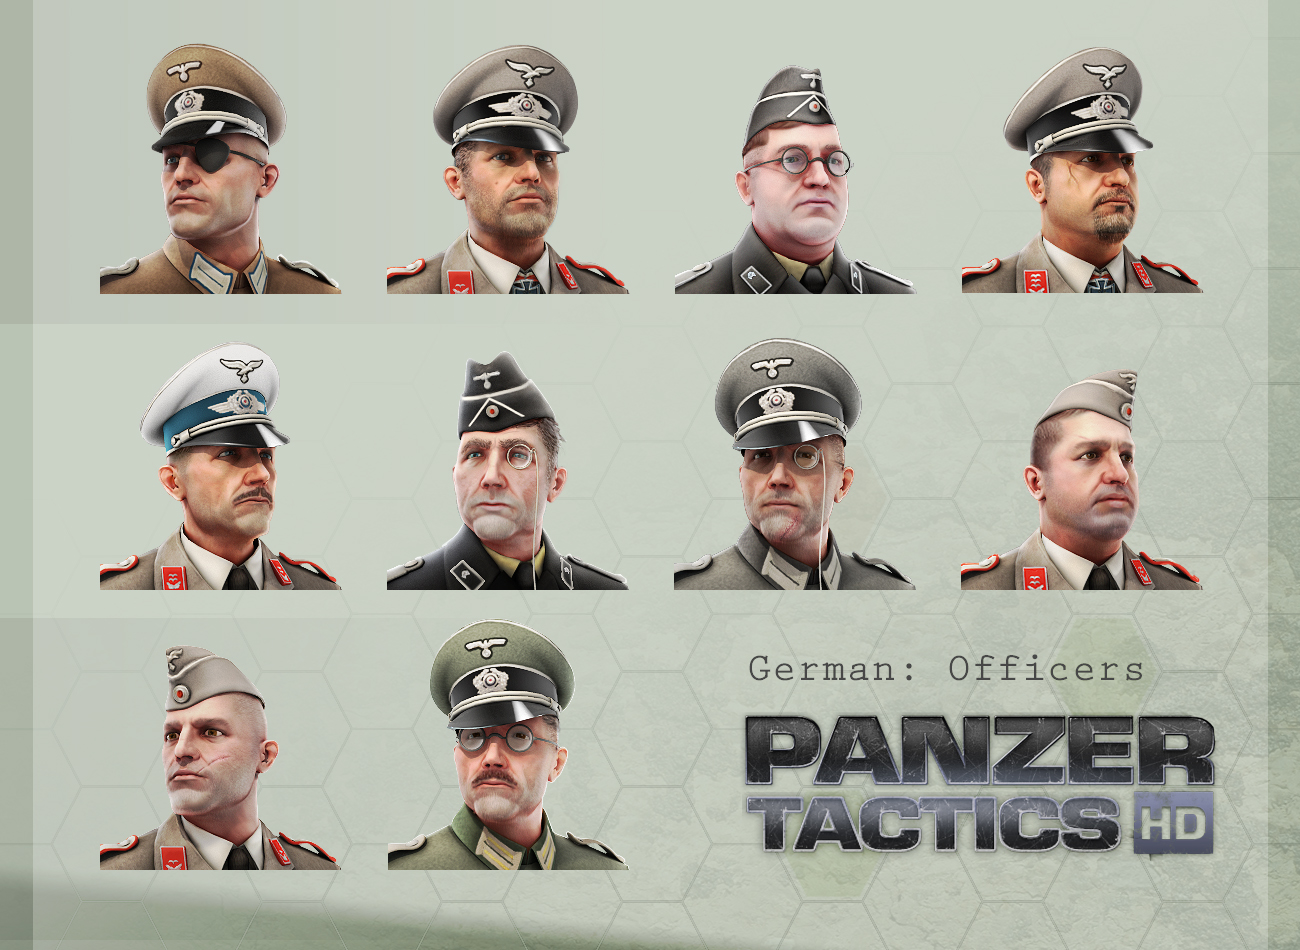 Panzer Tactics HD 8